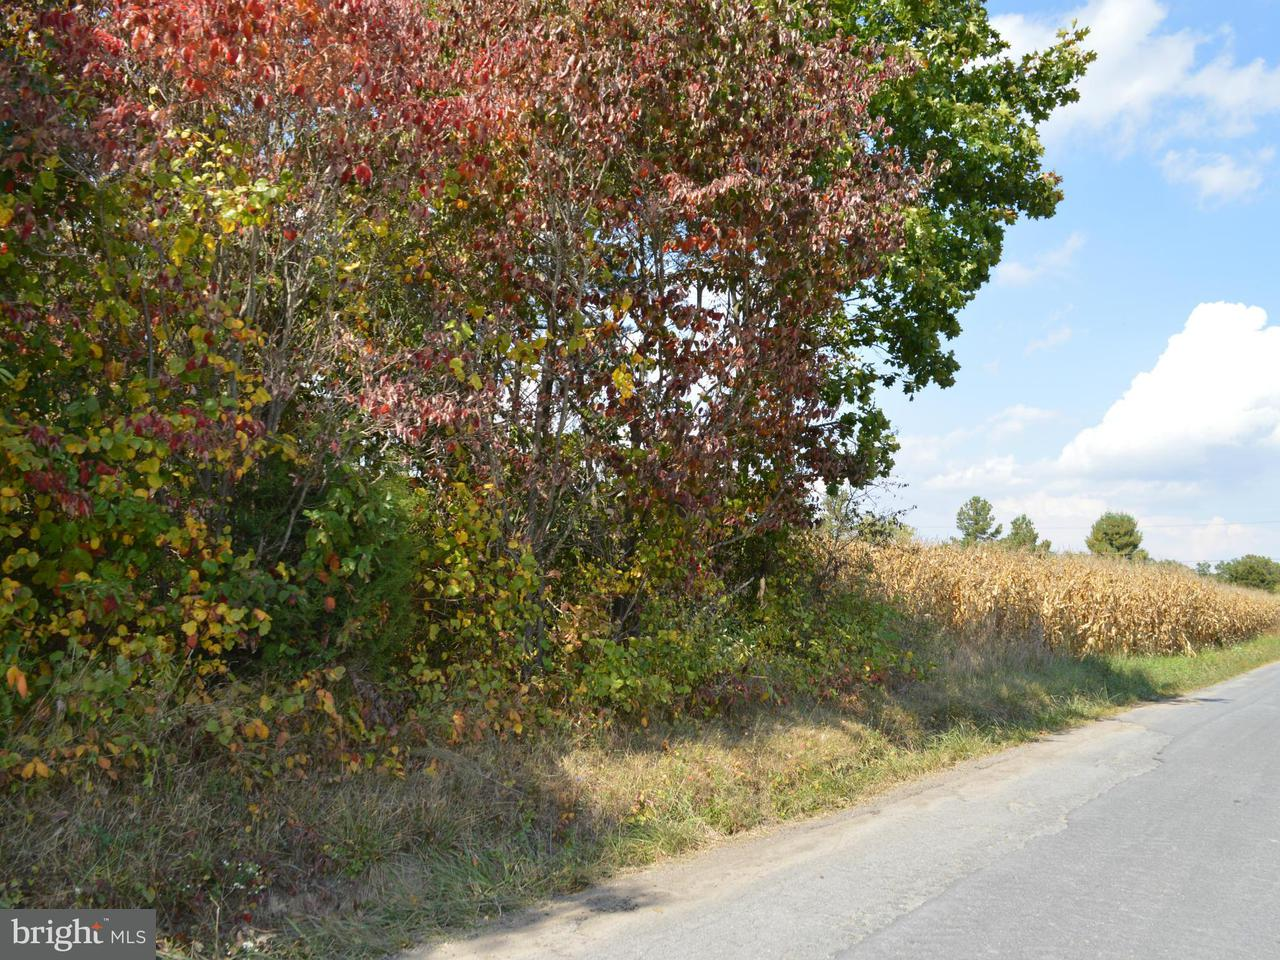 Land for Sale at 0 Tabor Rd Berkeley Springs, West Virginia 25411 United States